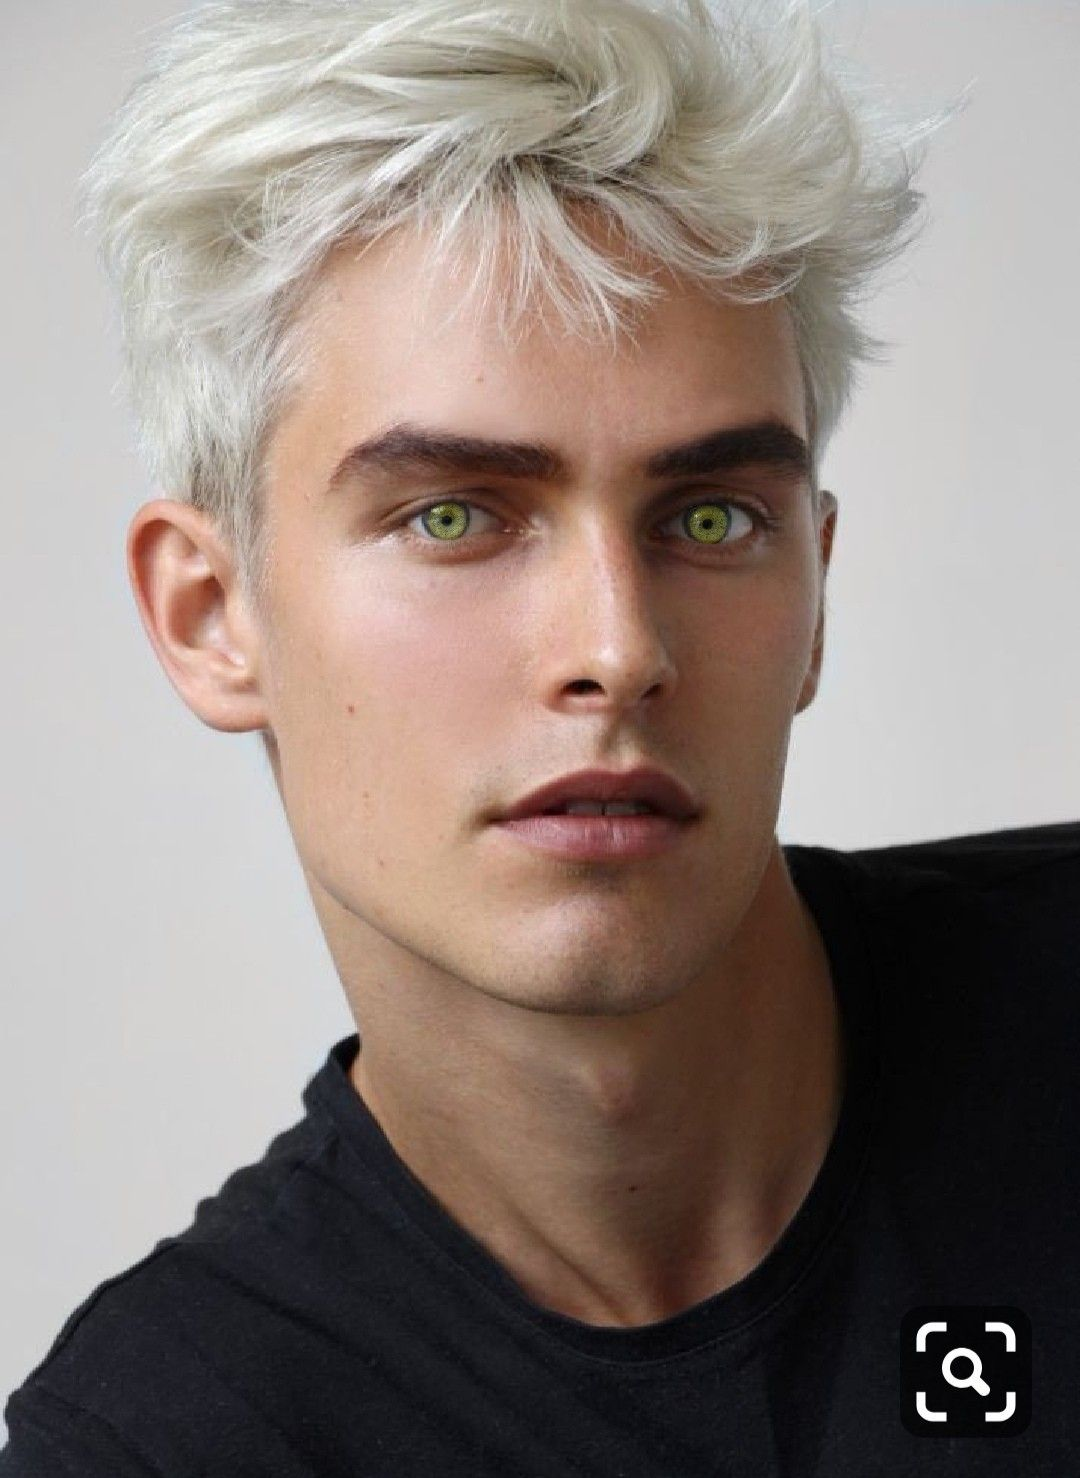 Pin By 3 On Anime In 2020 Men Blonde Hair White Hair Men Platinum Blonde Hair Men